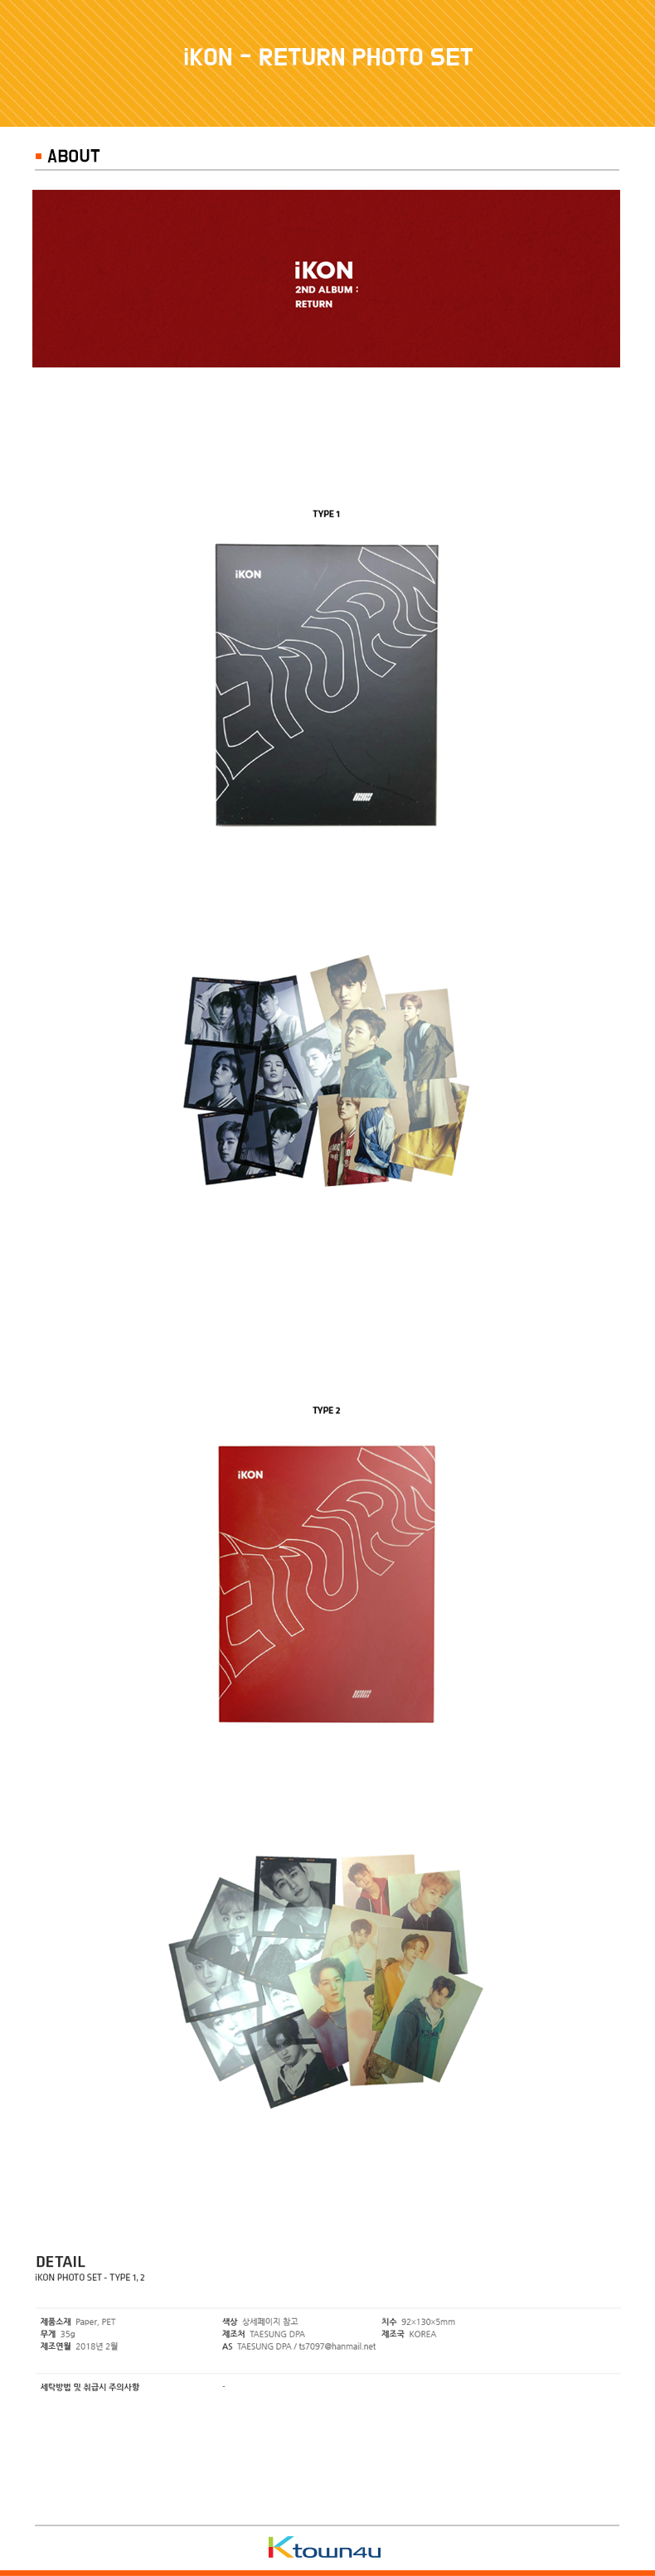 [RETURN] iKON - RETURN PHOTO SET